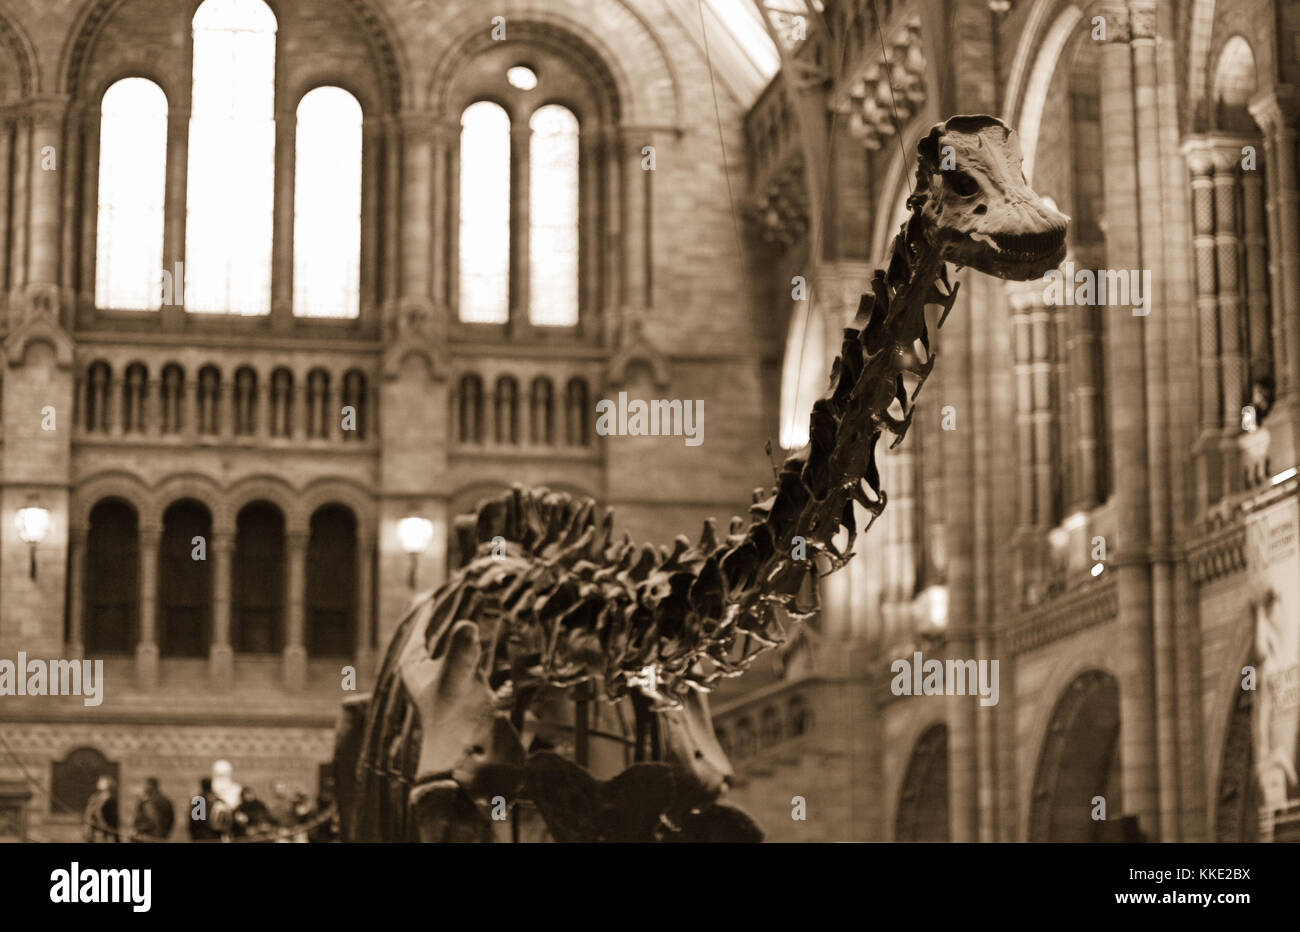 Natural History Museum, London - 15 Feb 2008 - Dippy was the iconic Diplodocus dinosaur of the Natural History Museum - Stock Image